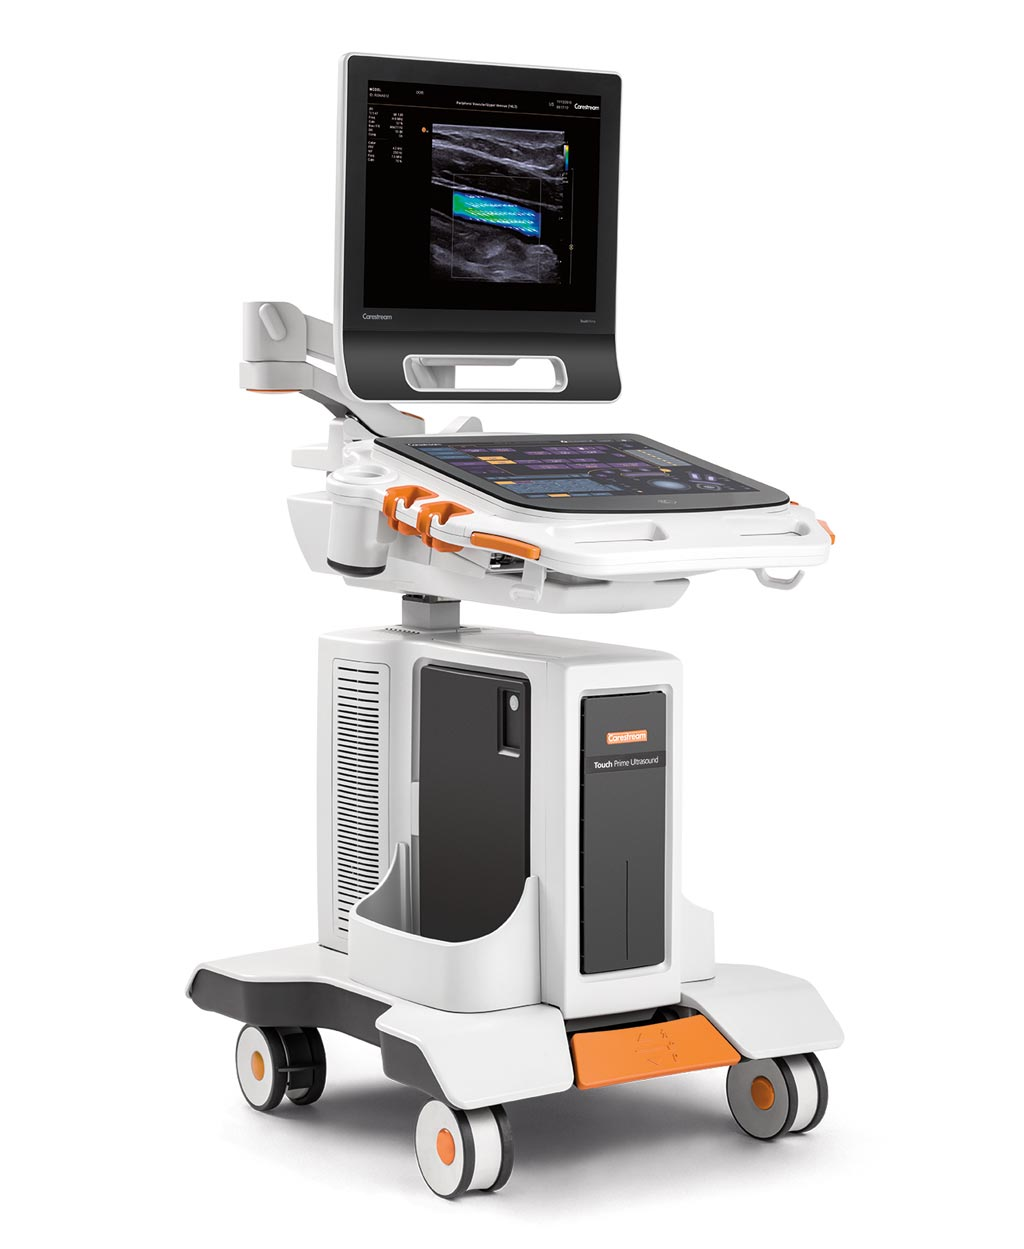 Image: The Touch Prime XE ultrasound system (Photo courtesy of Carestream Health).